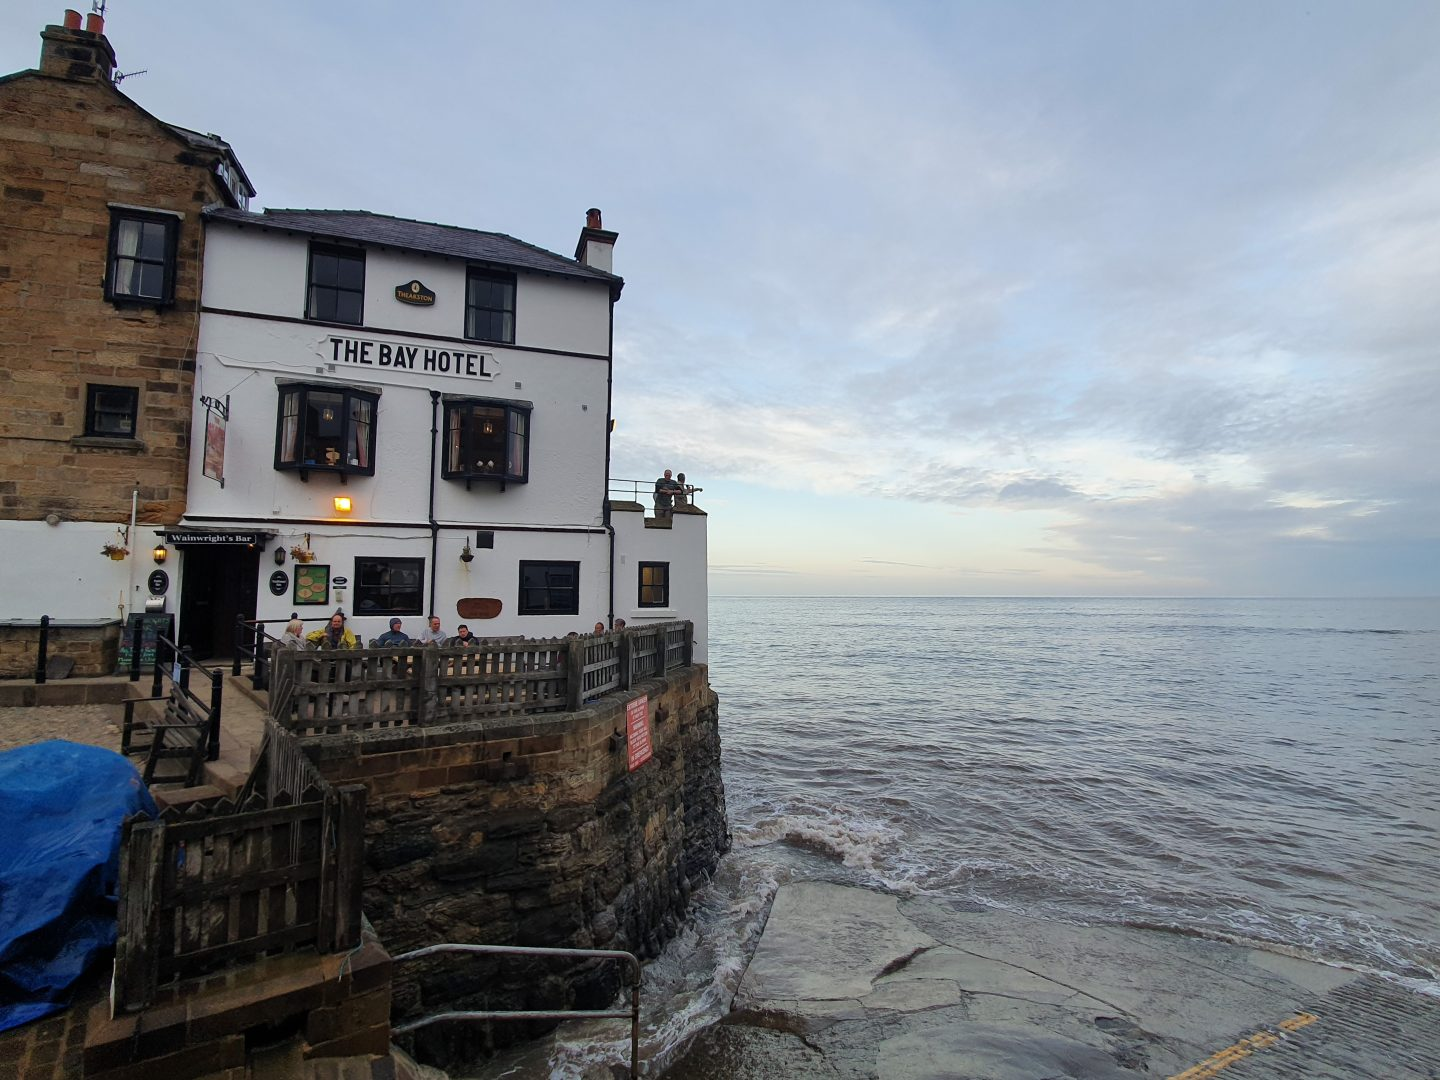 The Bay Hotel perched on the edge of a harbour wall with sea to the right, dominating the photograph